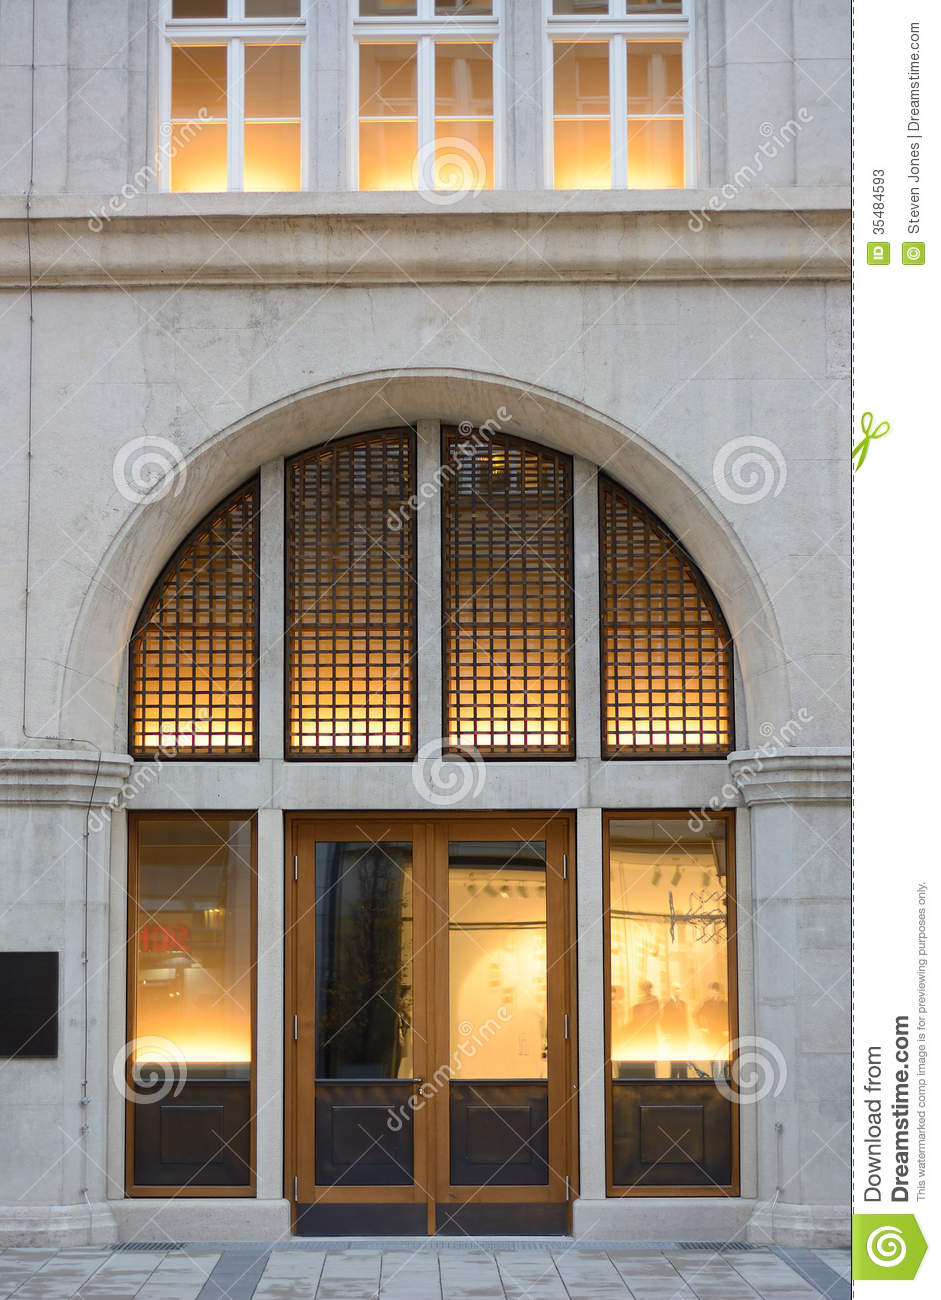 Building Entrance With Warm Light Stock Photos Image